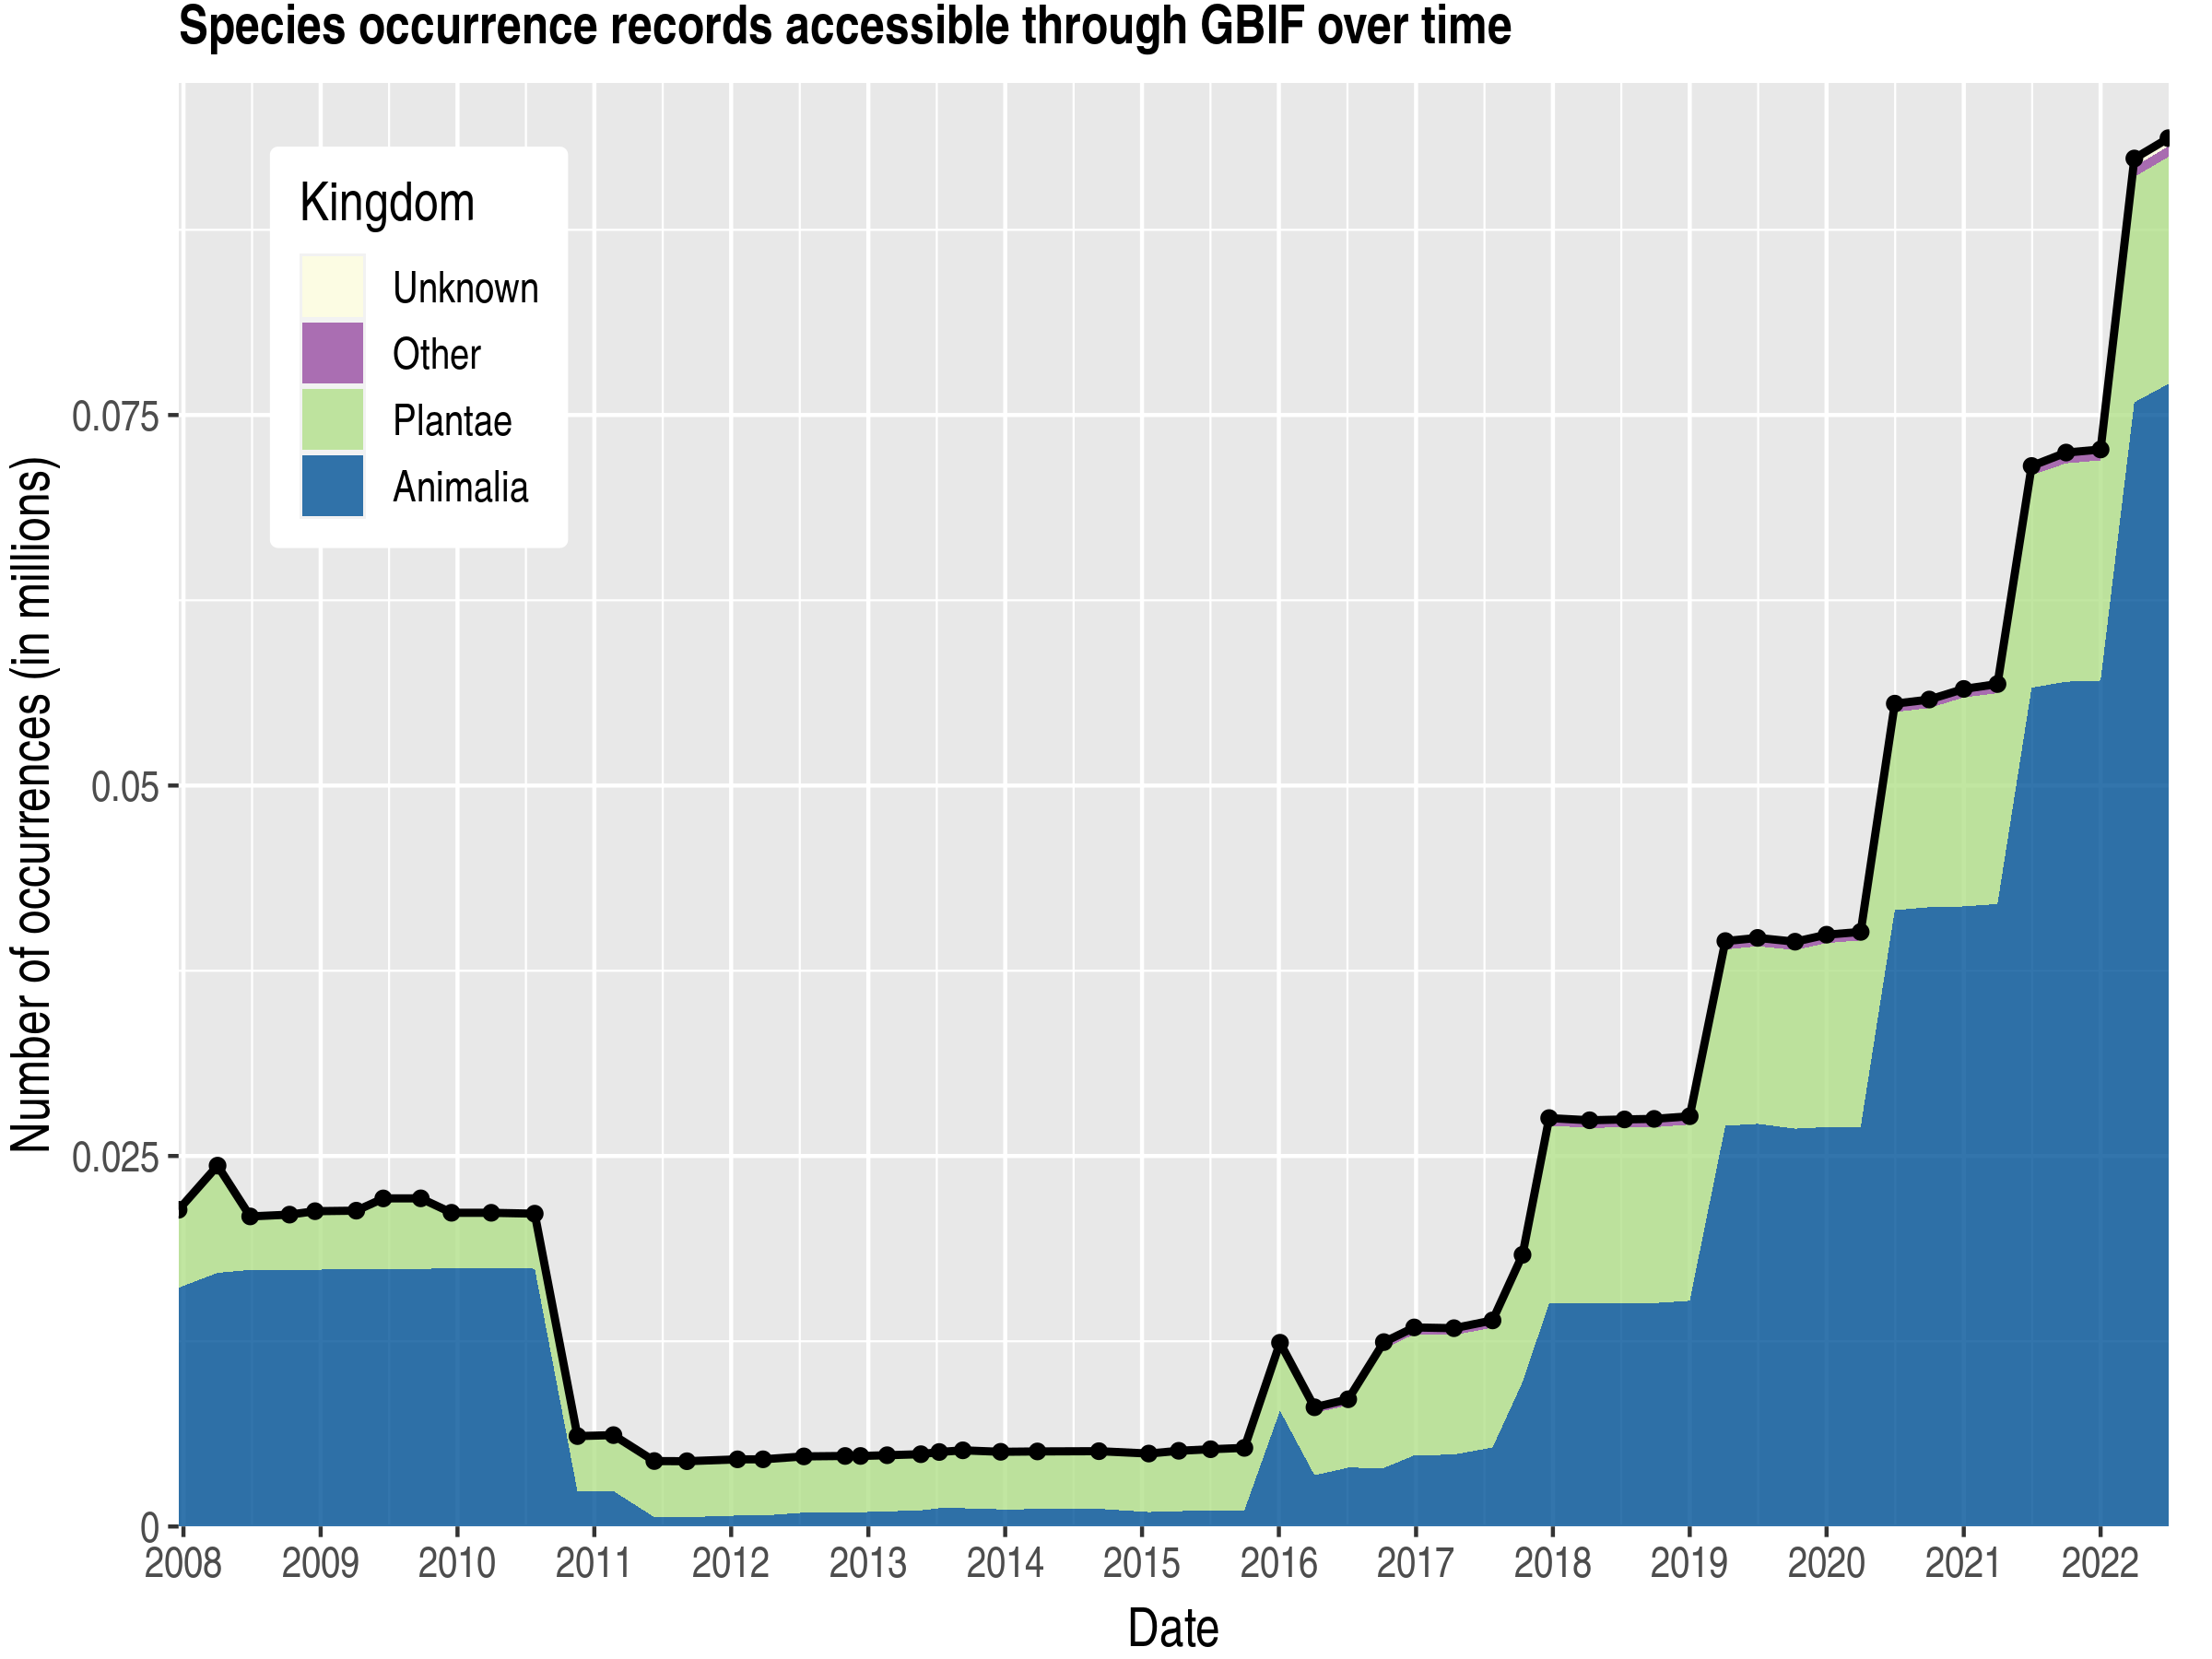 Data trend of records by kingdom about Moldova, Republic of